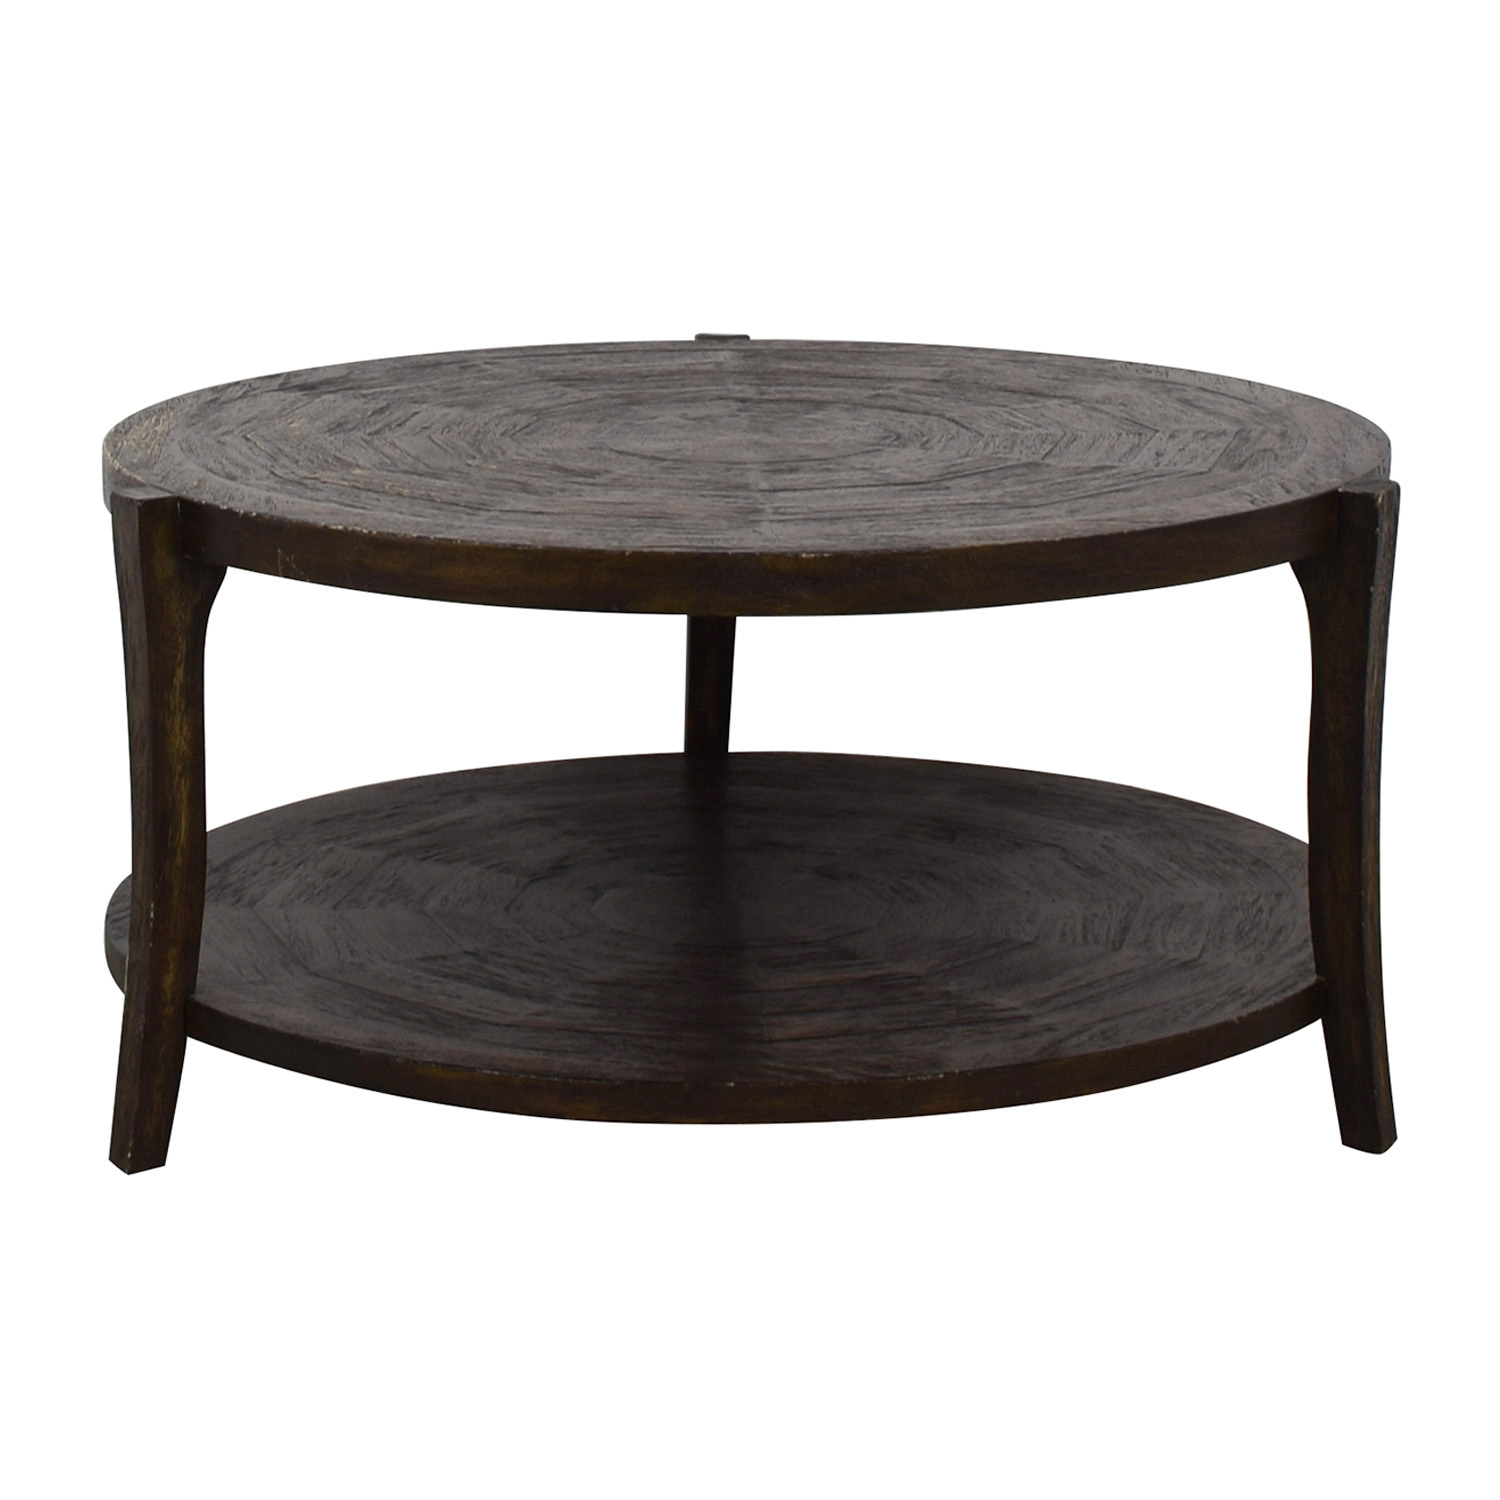 Uttermost Uttermost Pias Rustic Coffee Table on sale